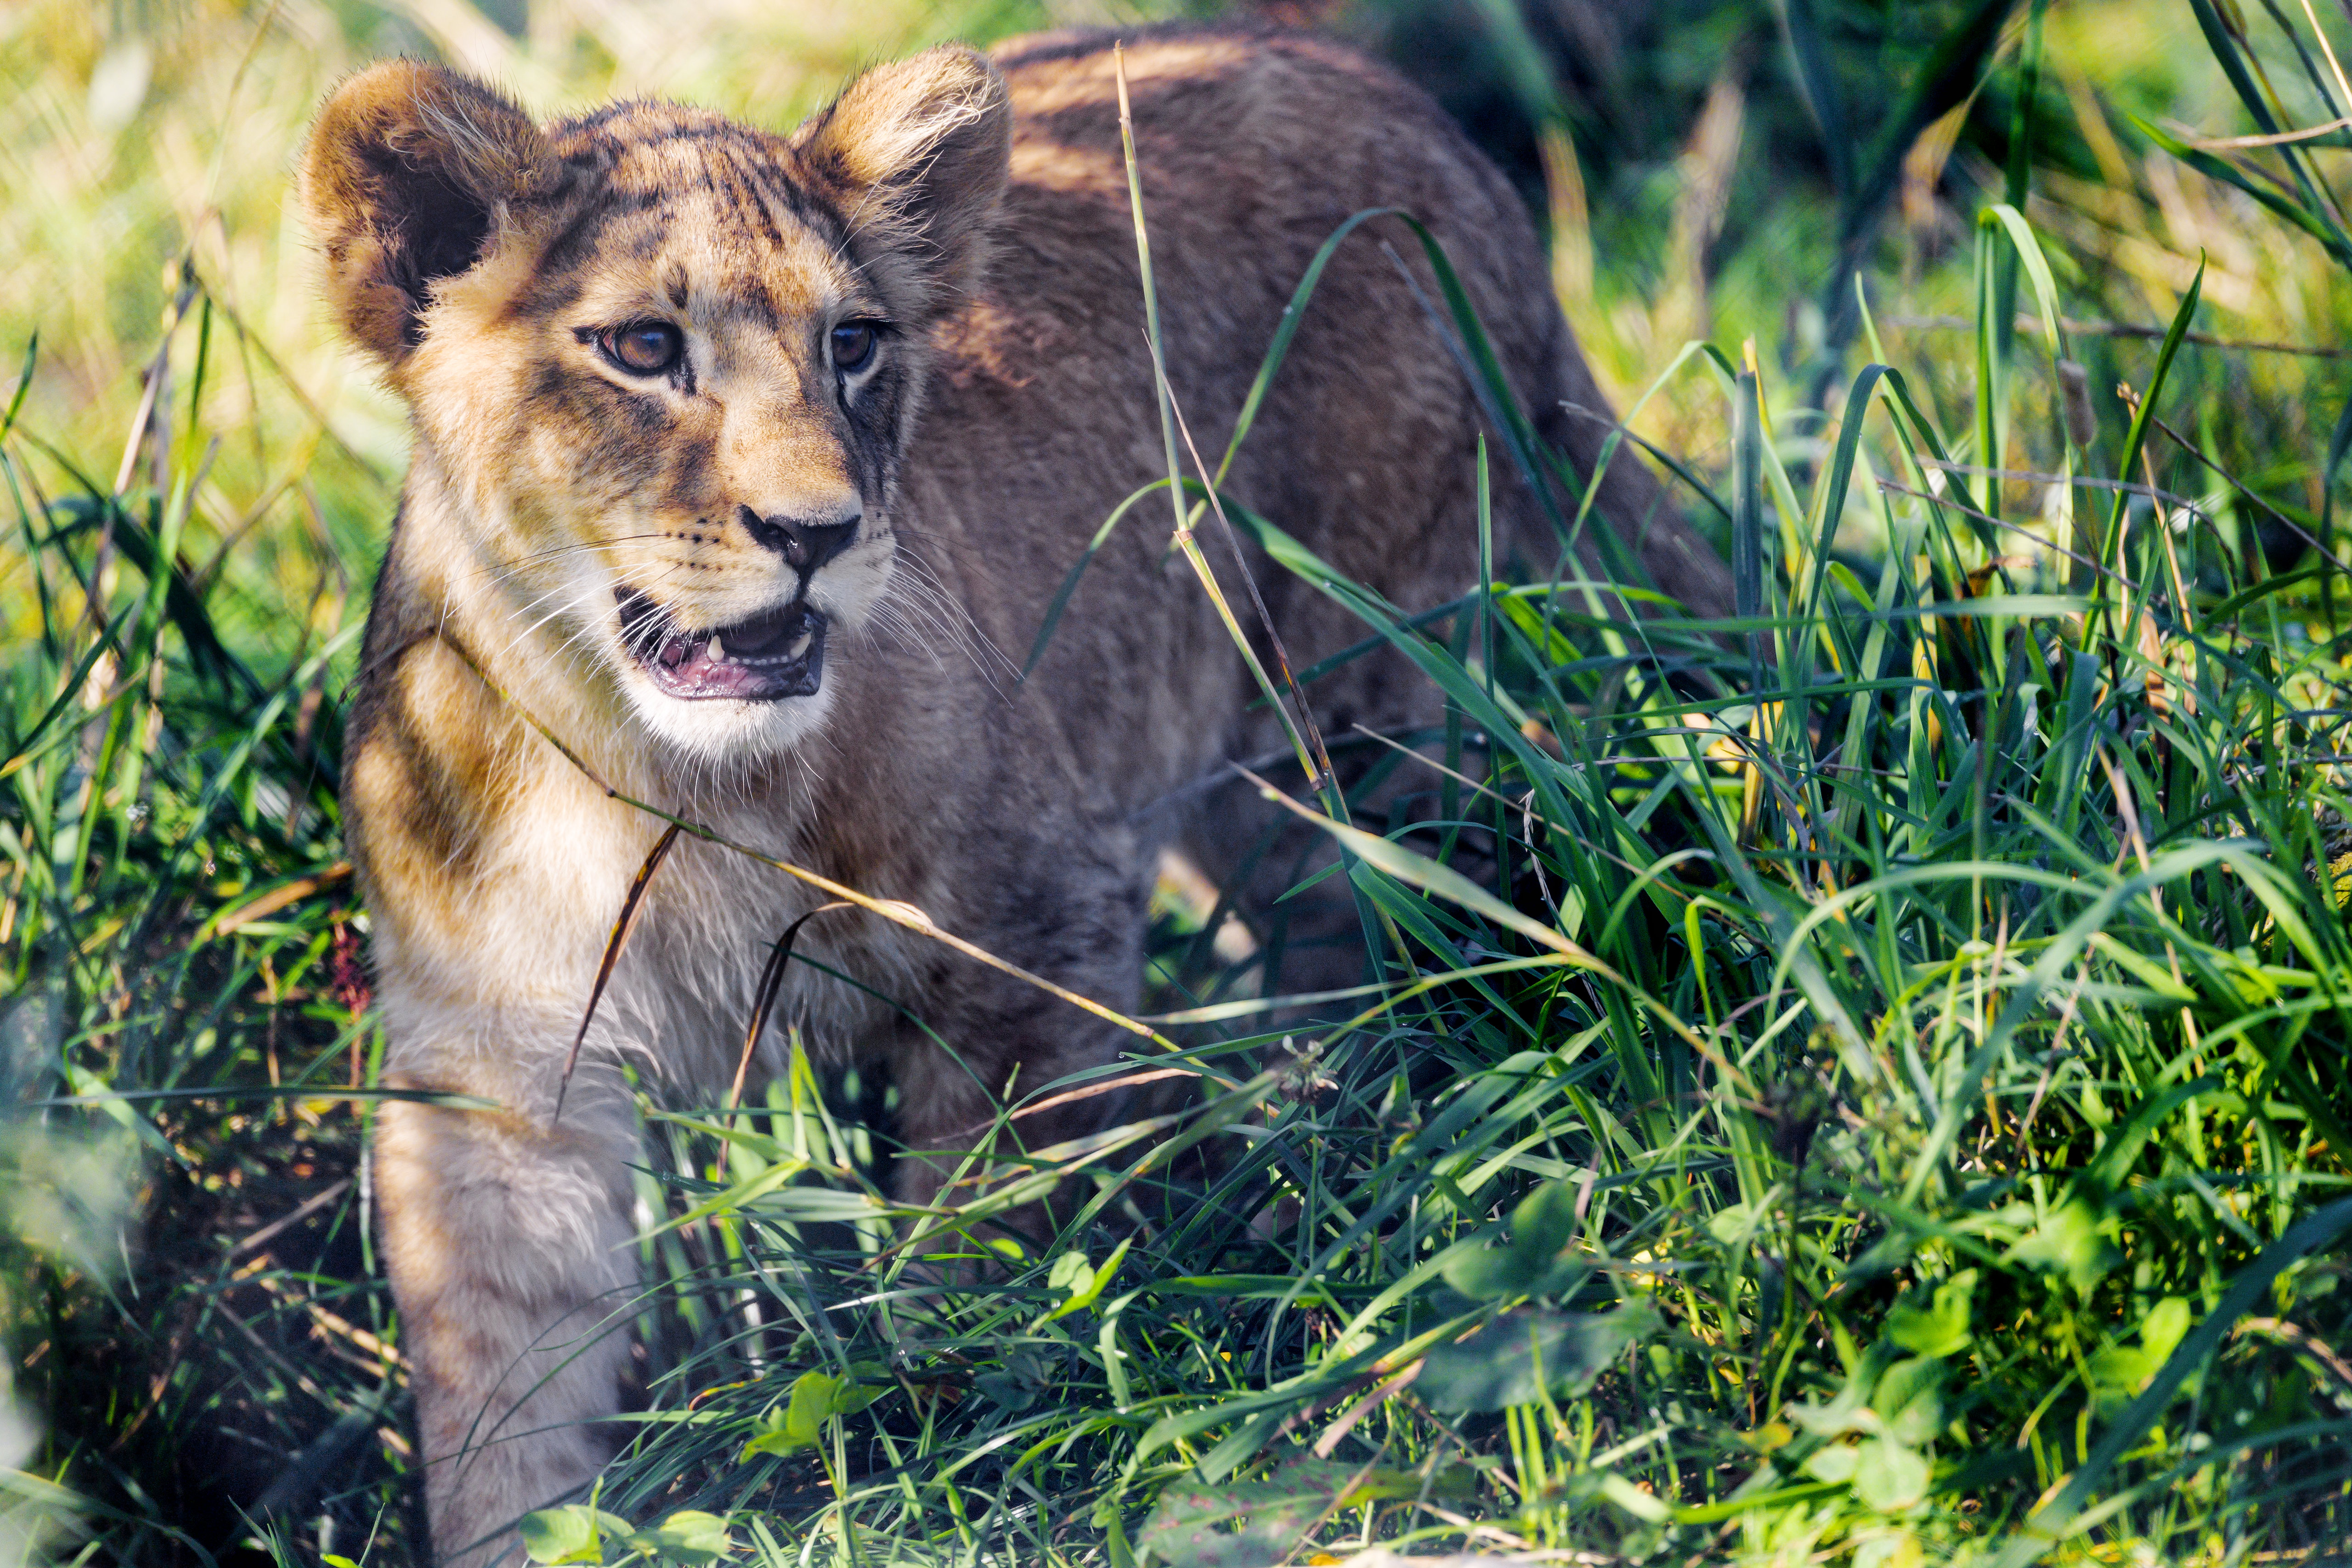 77126 download wallpaper Animals, Lion Cub, Lion, Young, Joey, Grass, Predator, Animal screensavers and pictures for free